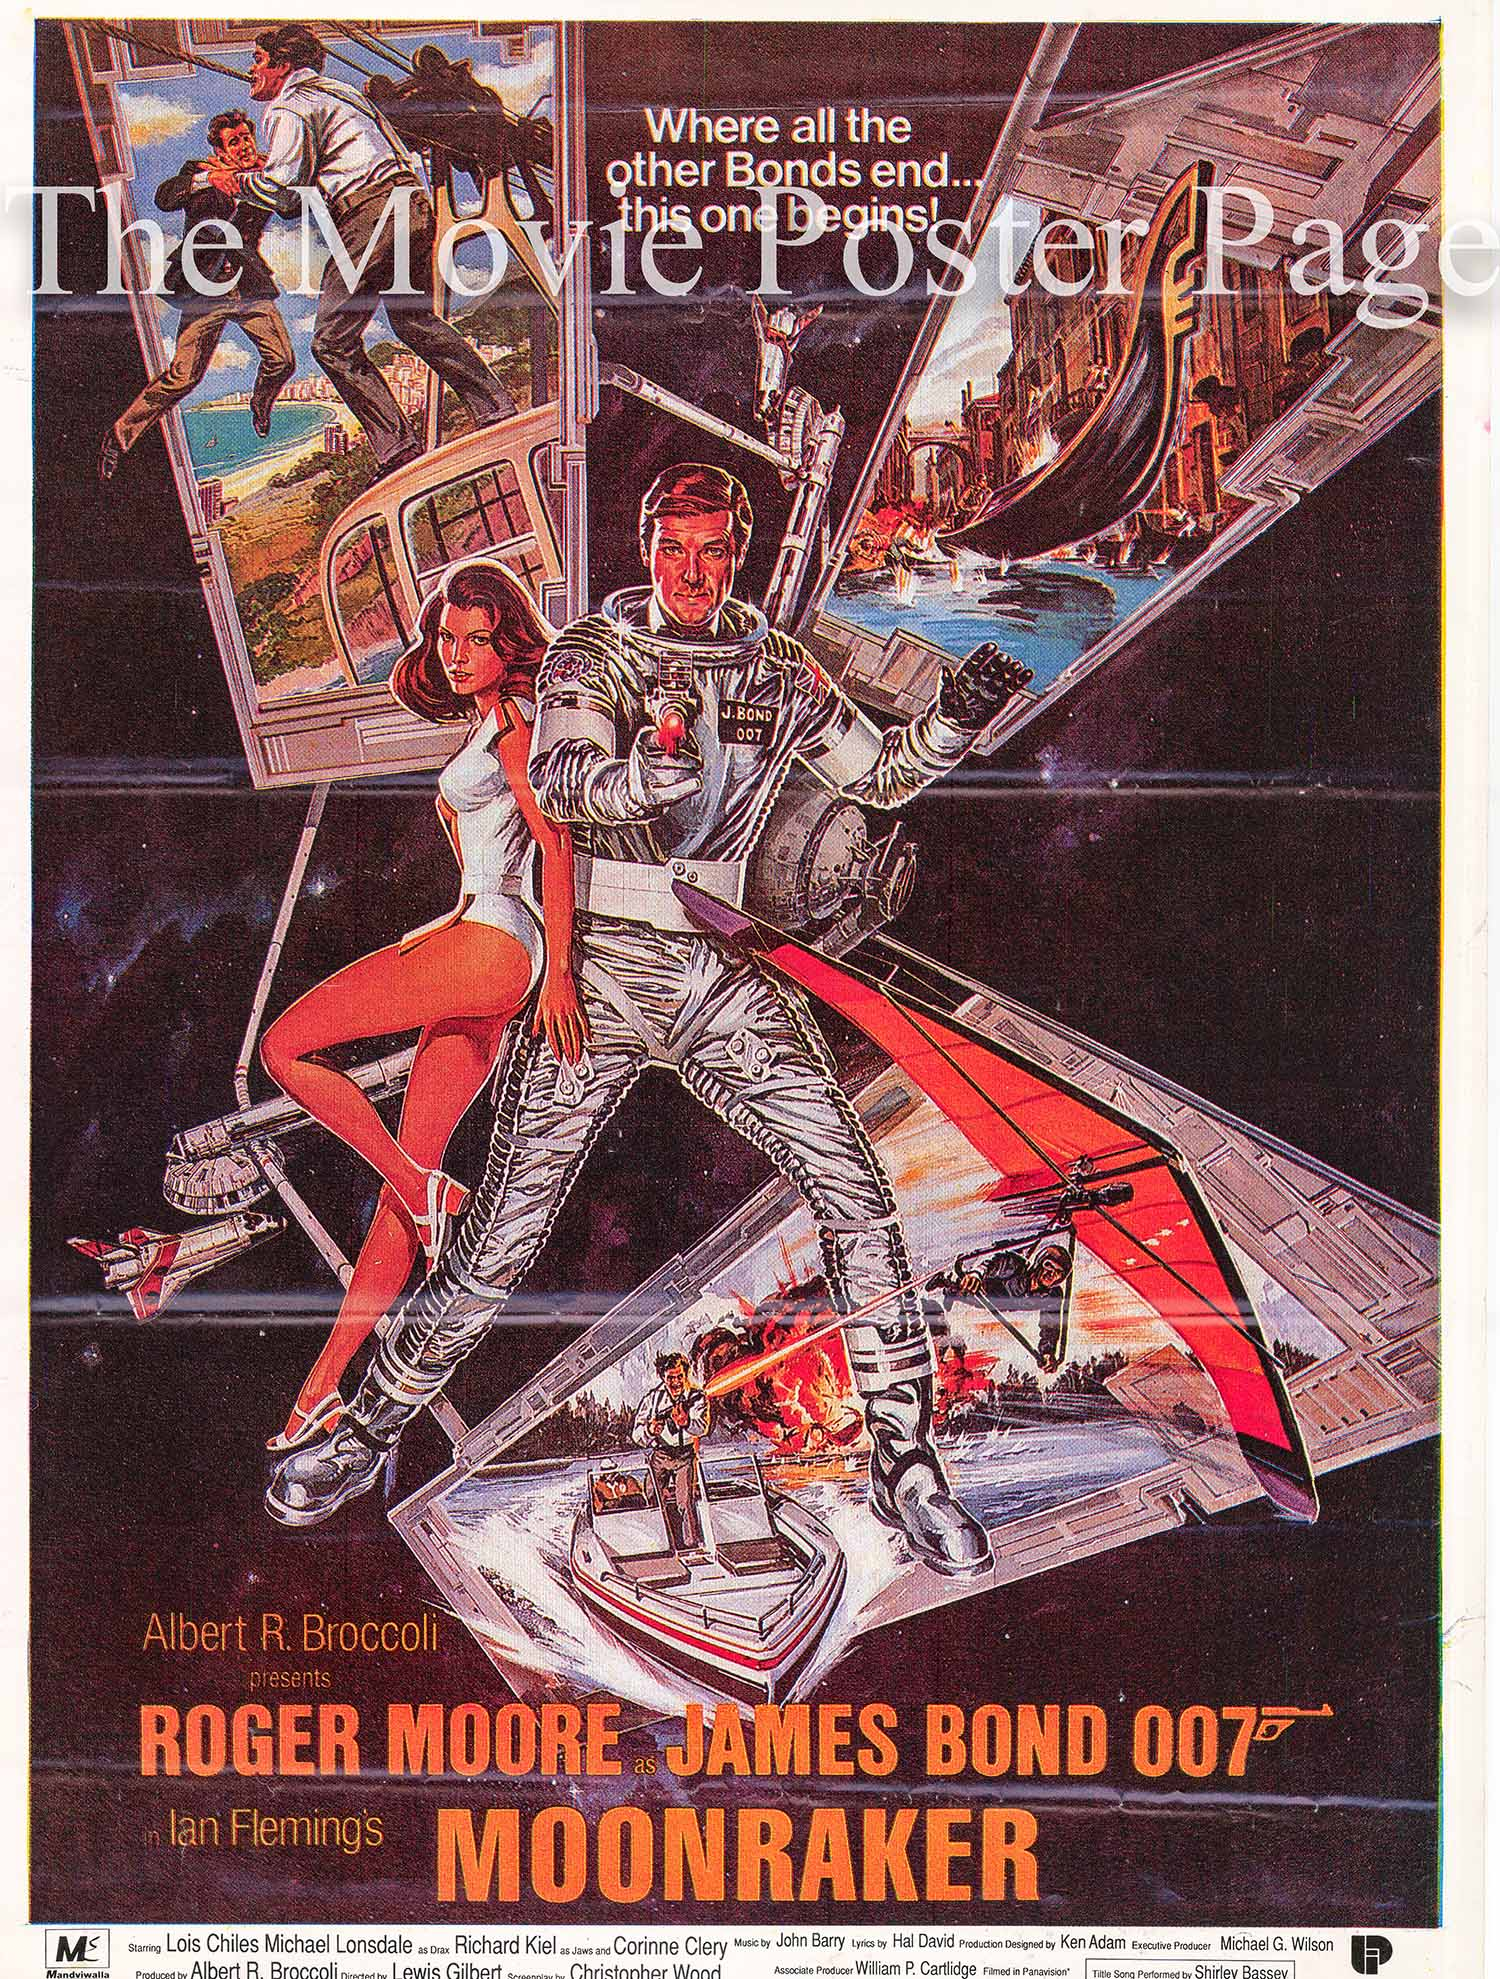 Pictured is a Pakistani one-sheet designed to promote the 1979 Lewis Gilbert film Moonraker starring Roger Moore as James Bond.